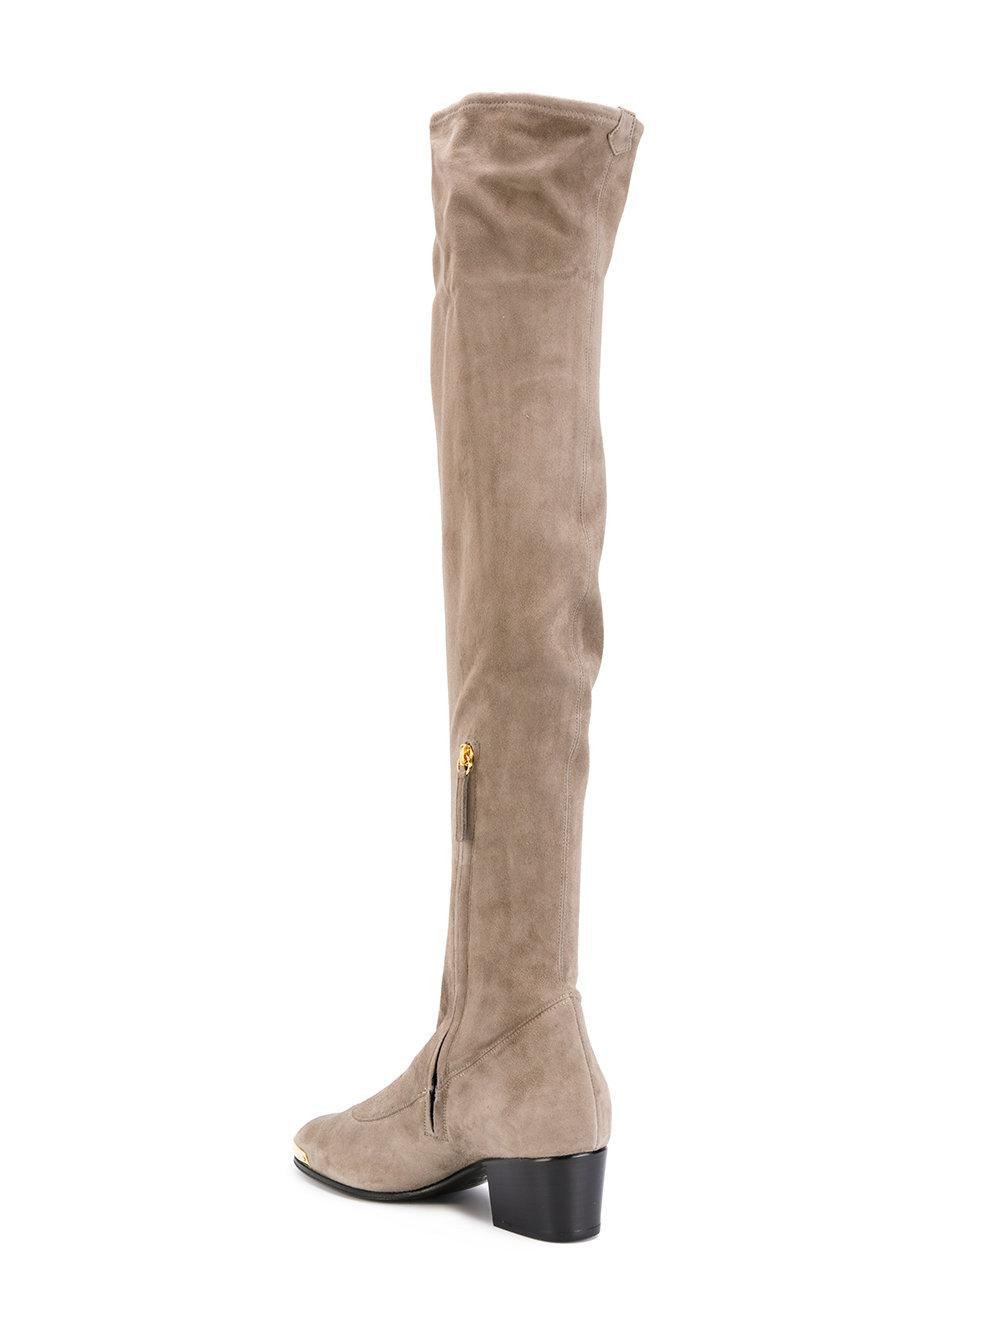 Giuseppe Zanotti Leather Thigh Length Boots in Grey (Grey)